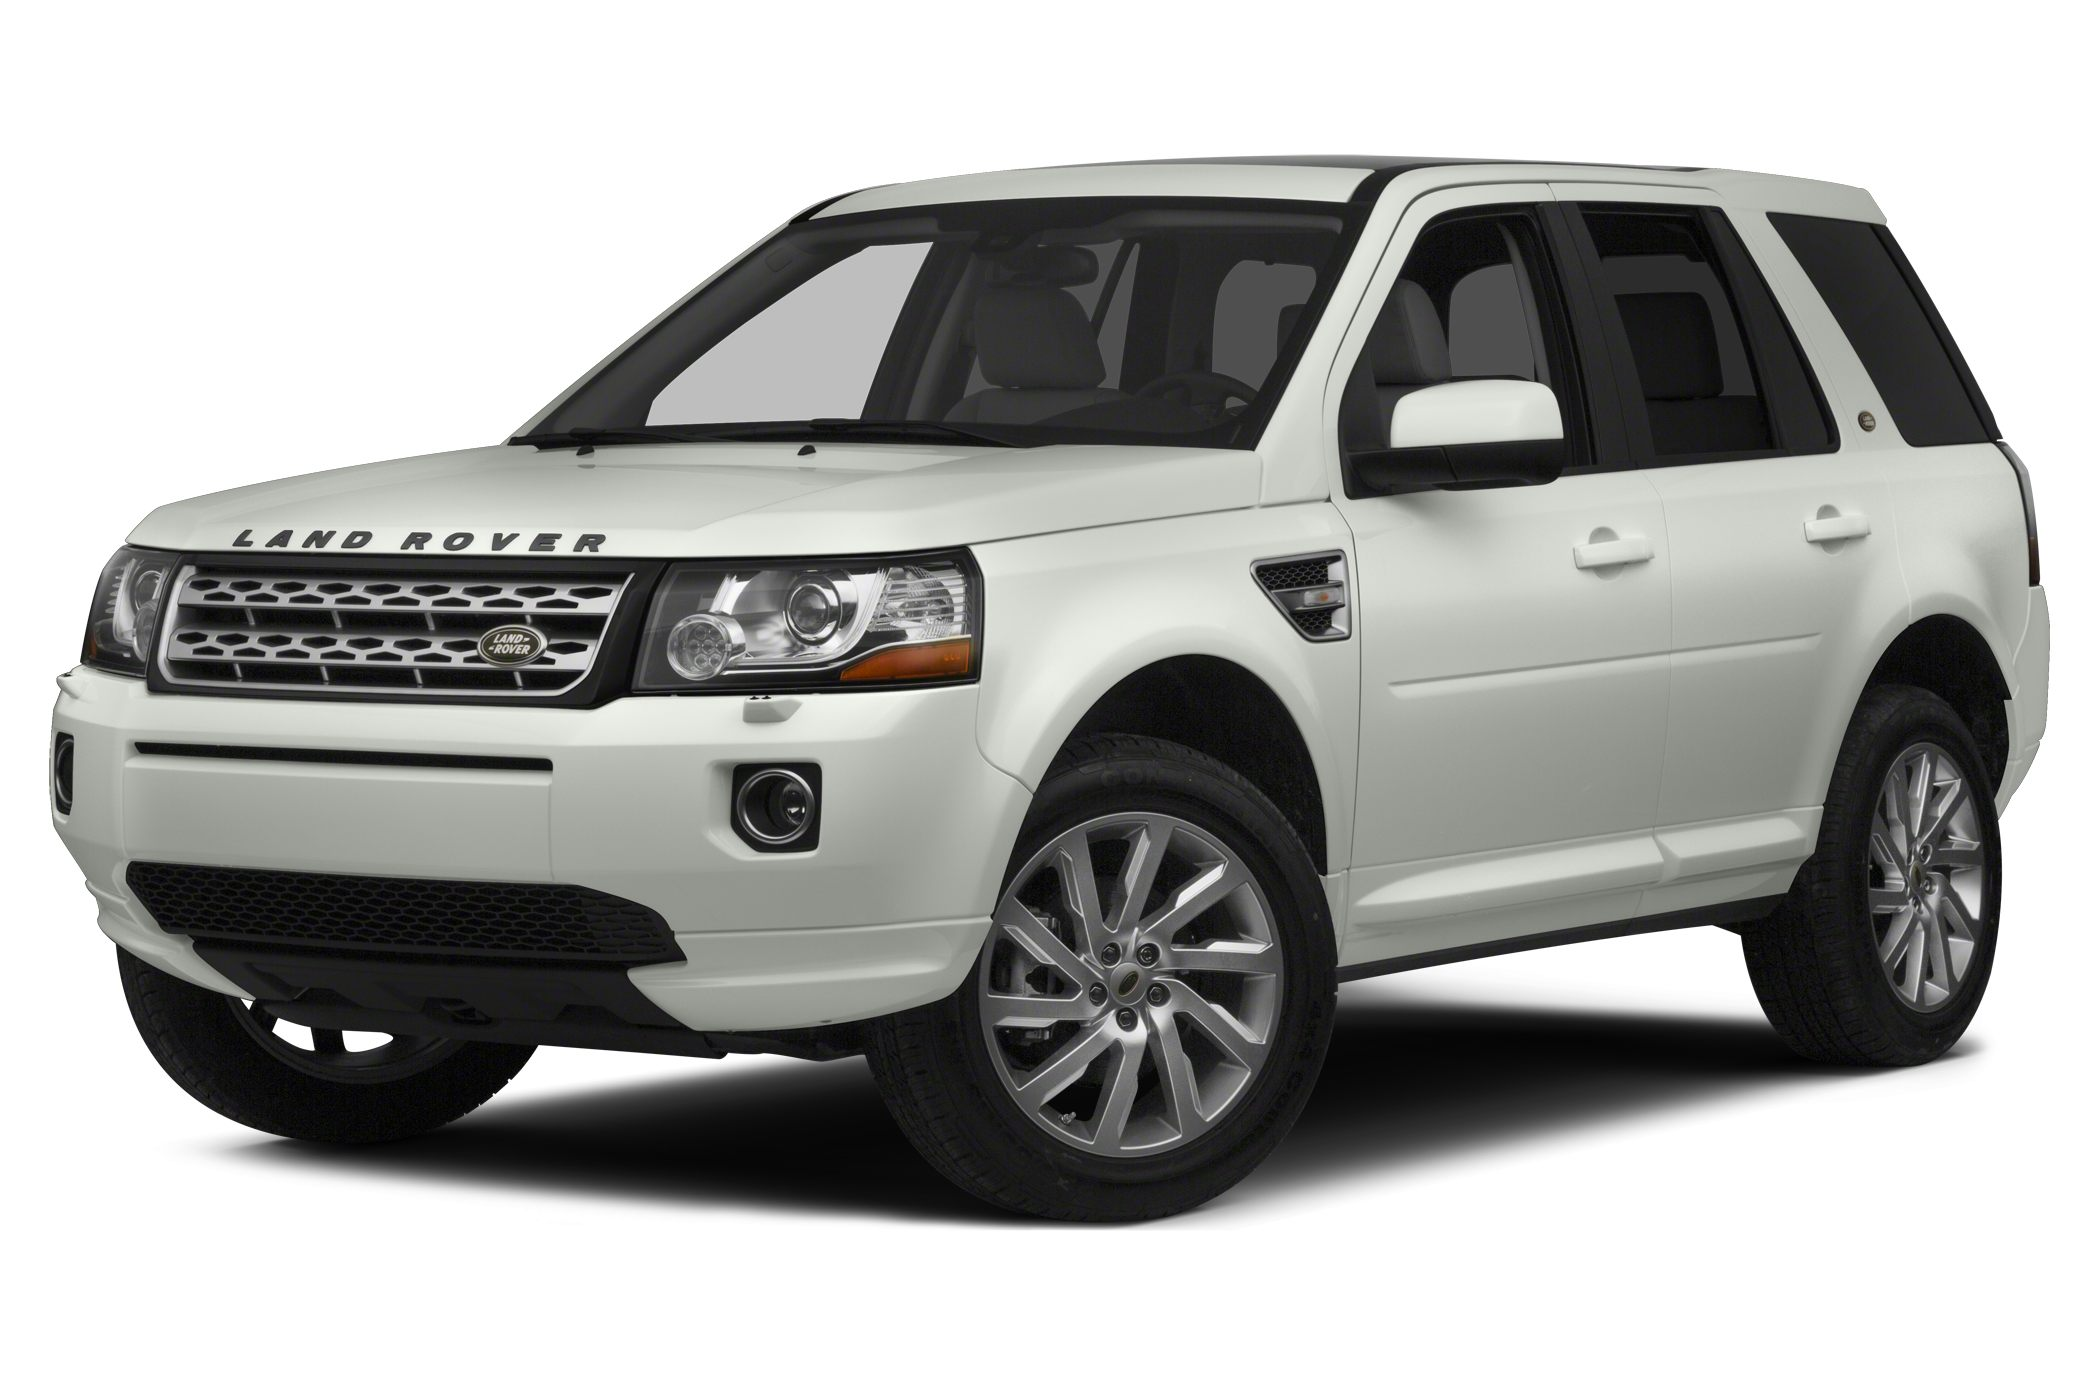 Land Rover Lr2 News Photos And Buying Information Autoblog